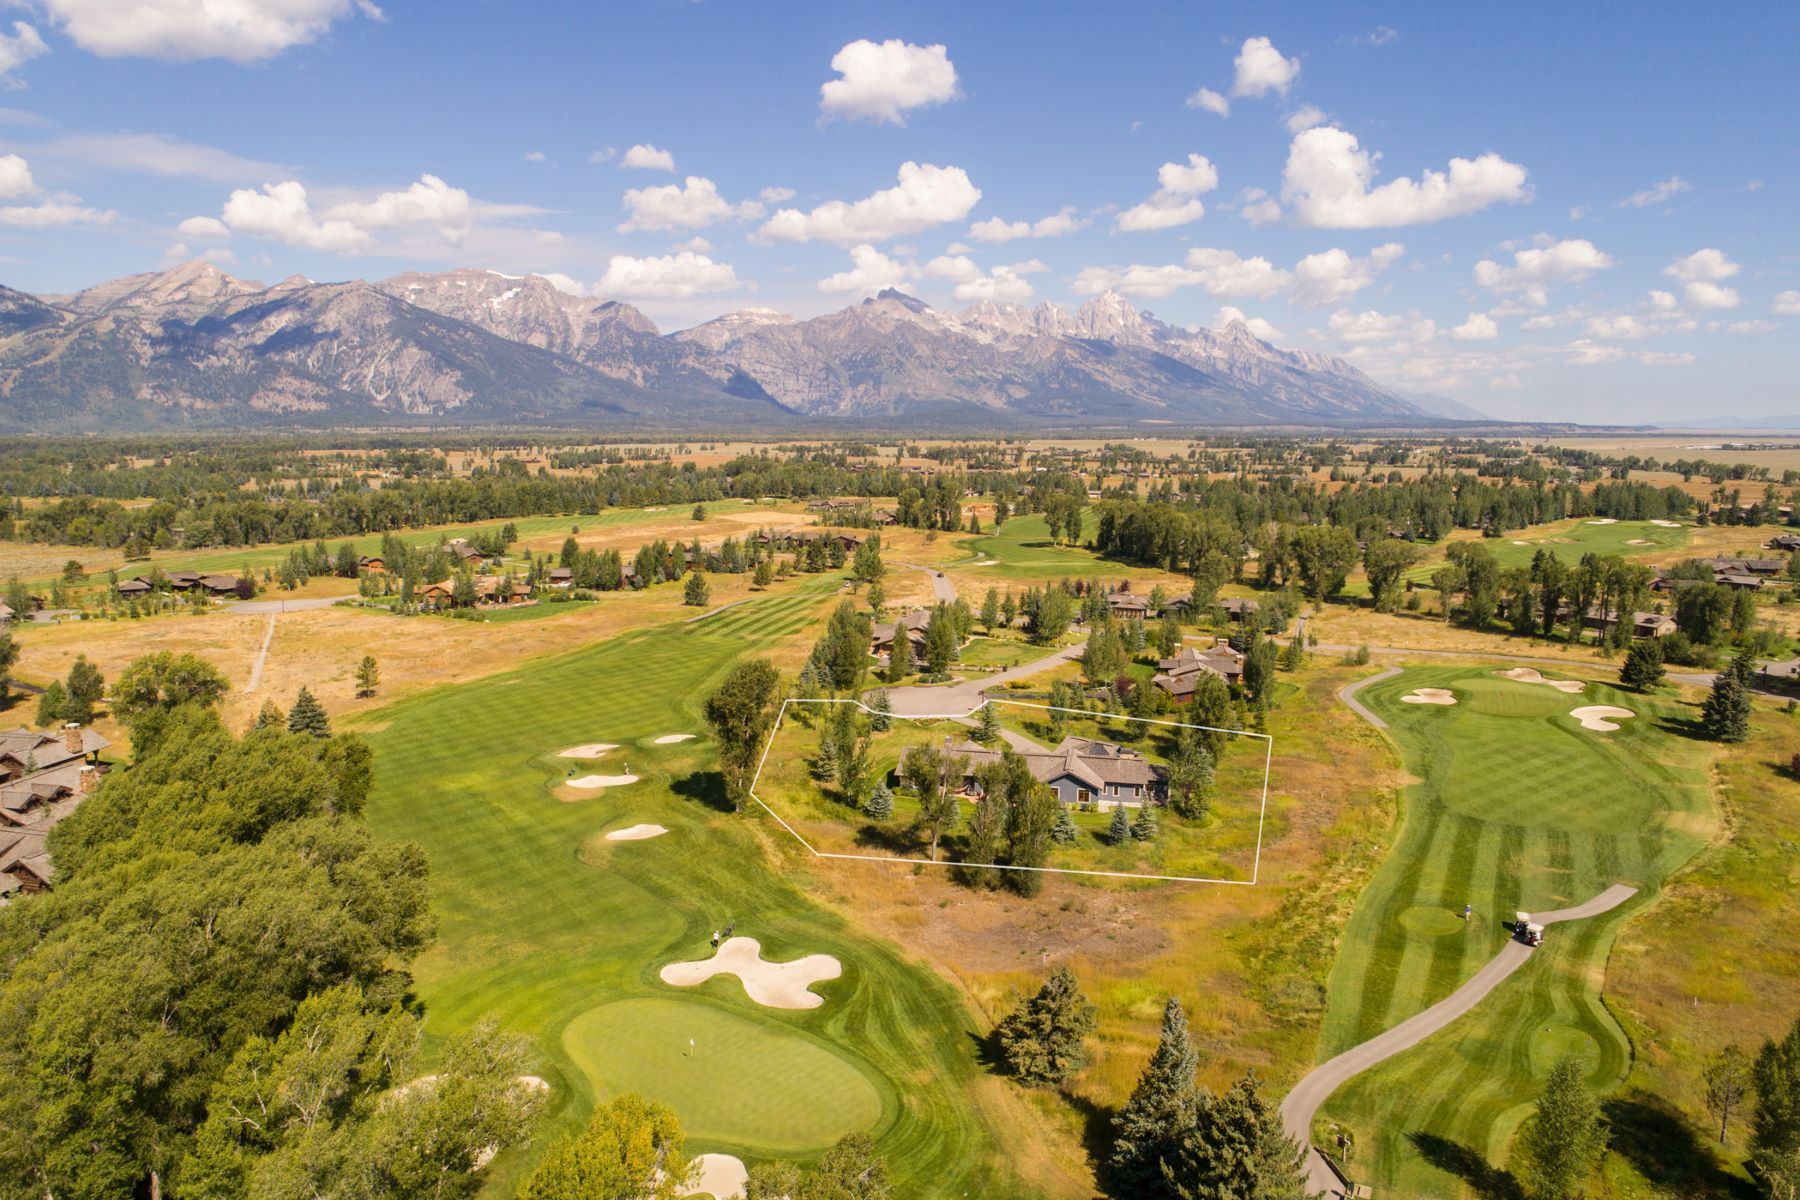 独户住宅 为 销售 在 Jackson Hole Golf & Tennis Club 6040 Golden Currant Court, 杰克逊, 怀俄明州, 83001 Jackson Hole, 美国